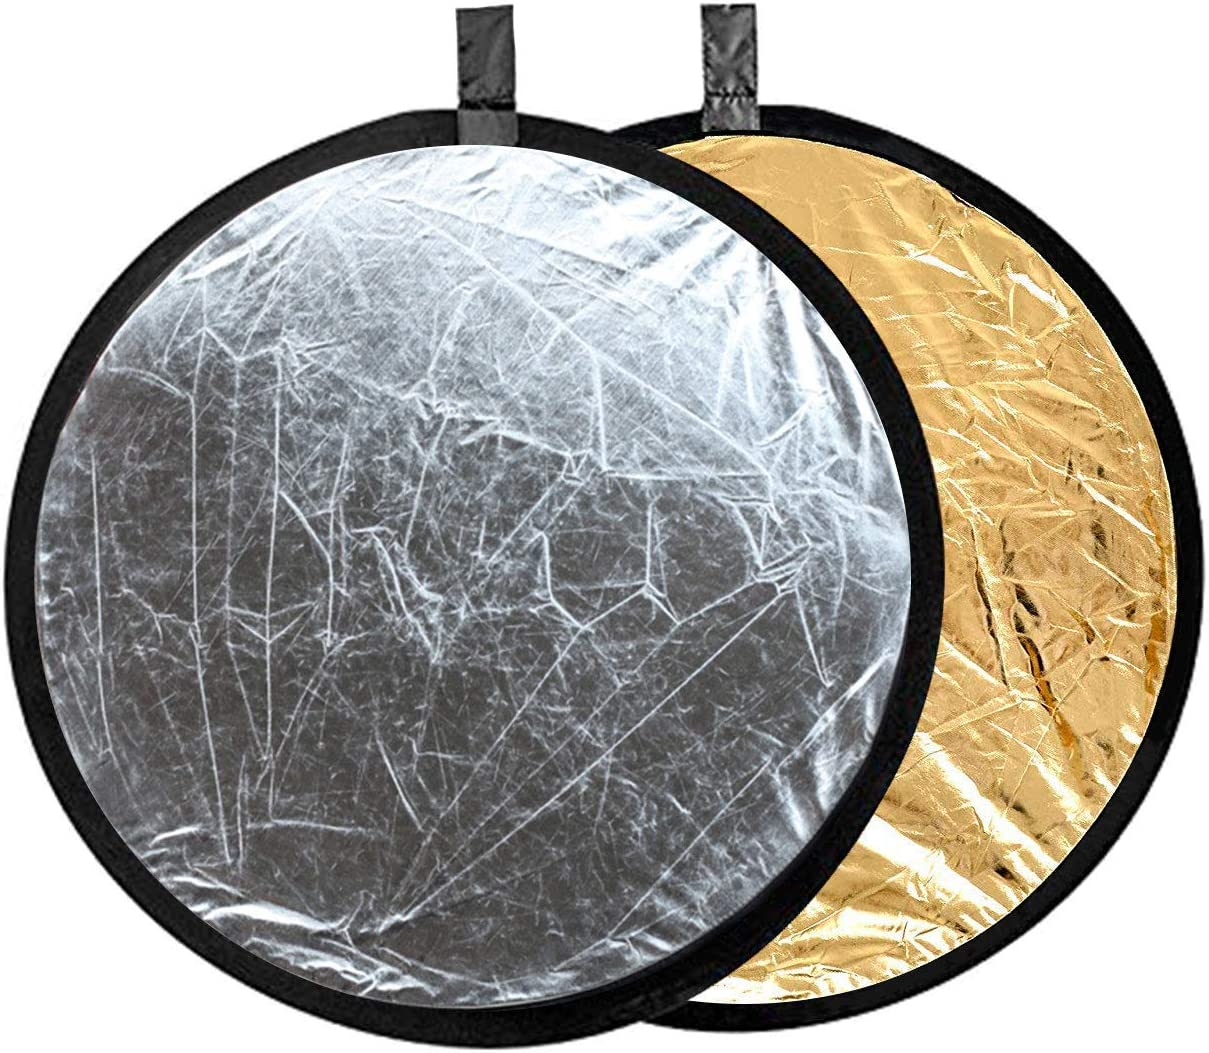 MeterMall 43 5 in1 Photography Studio Multi Photo Disc Collapsible Light Reflector with Bag